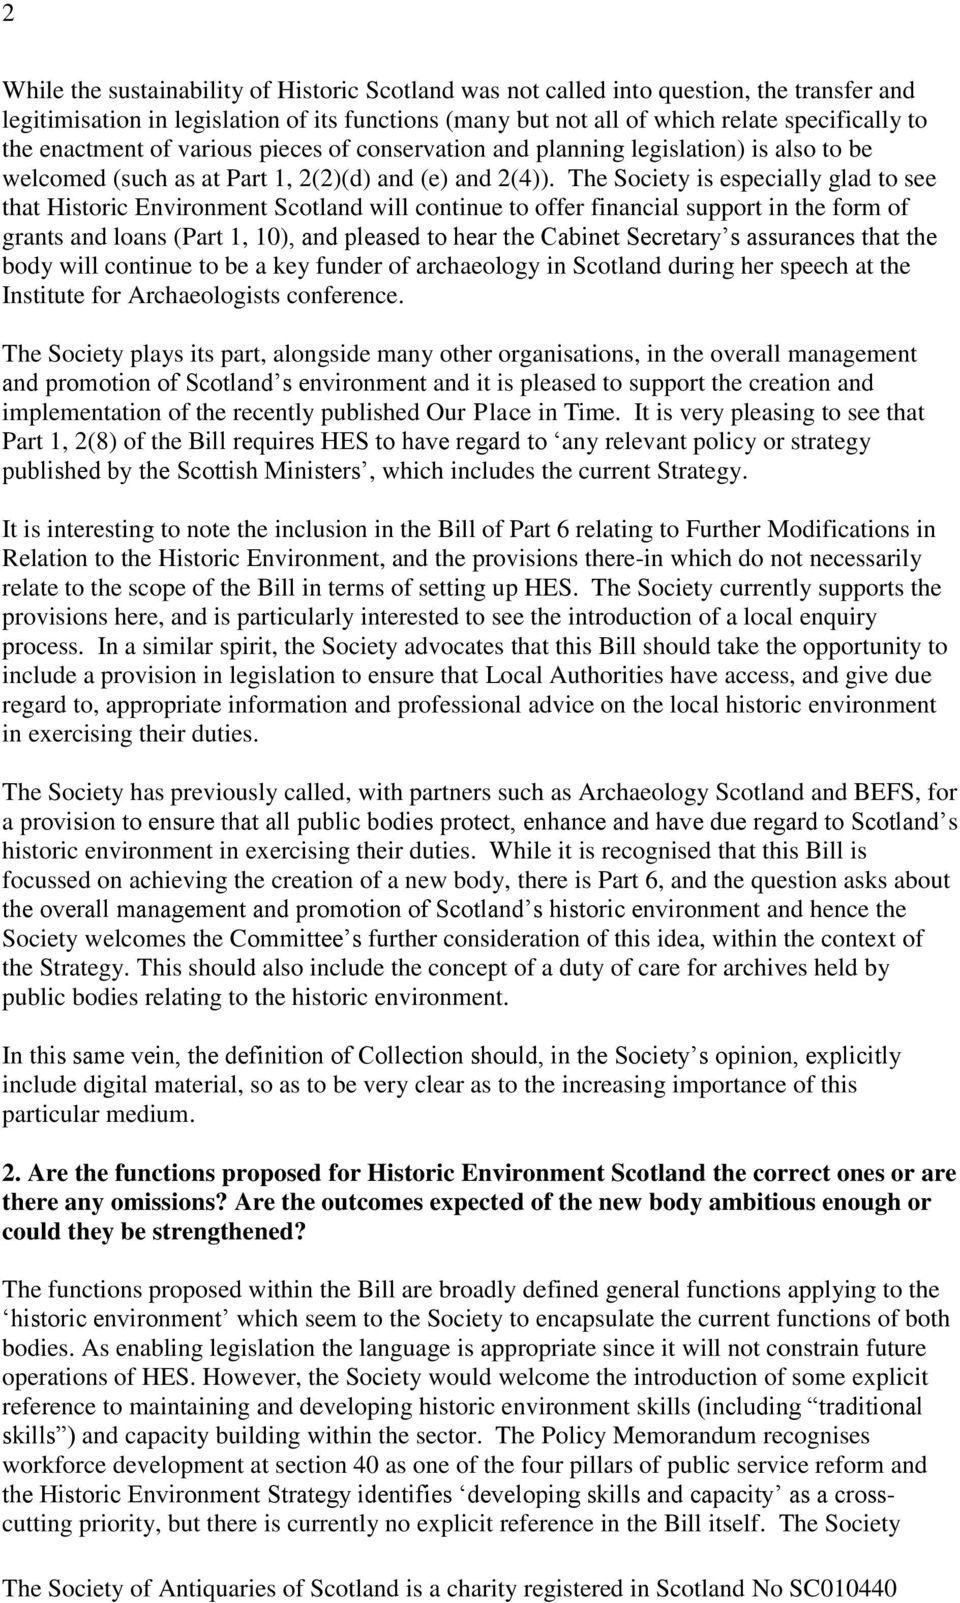 The Society is especially glad to see that Historic Environment Scotland will continue to offer financial support in the form of grants and loans (Part 1, 10), and pleased to hear the Cabinet